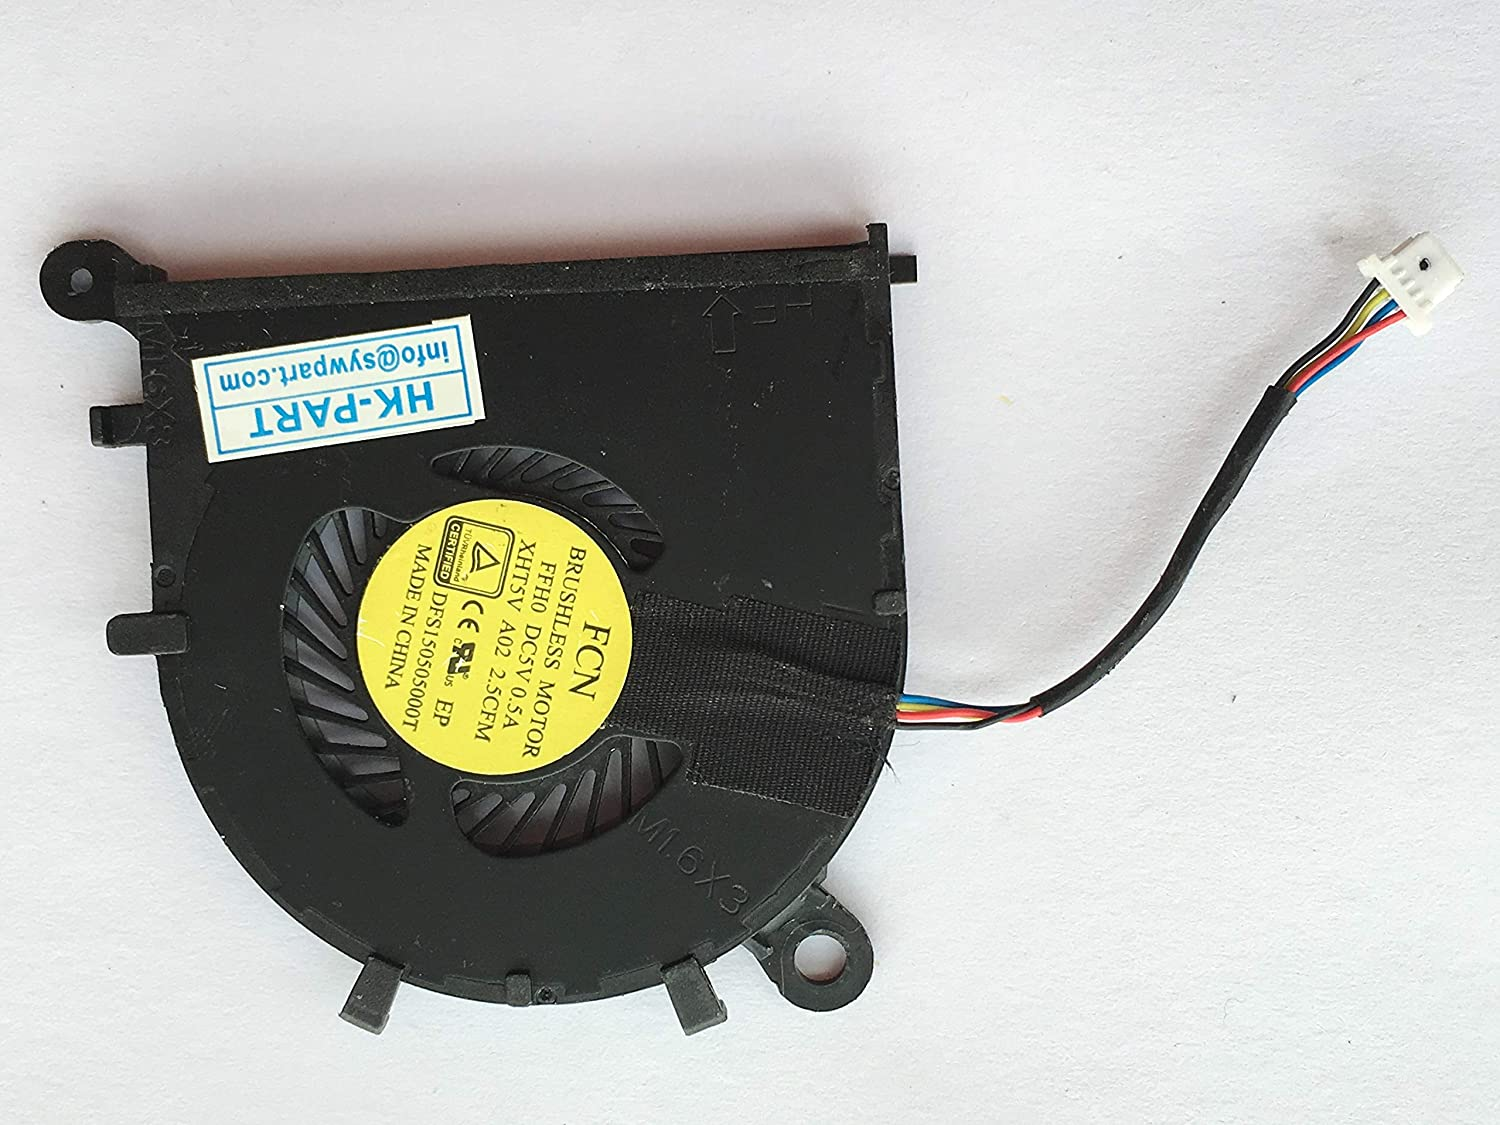 HK-Part Replacement Fan for Dell XPS 13 (9343) (9350) 13-9343 13-9350 CPU Cooling Fan DP/N XHT5V 0XHT5V CN-XHT5V